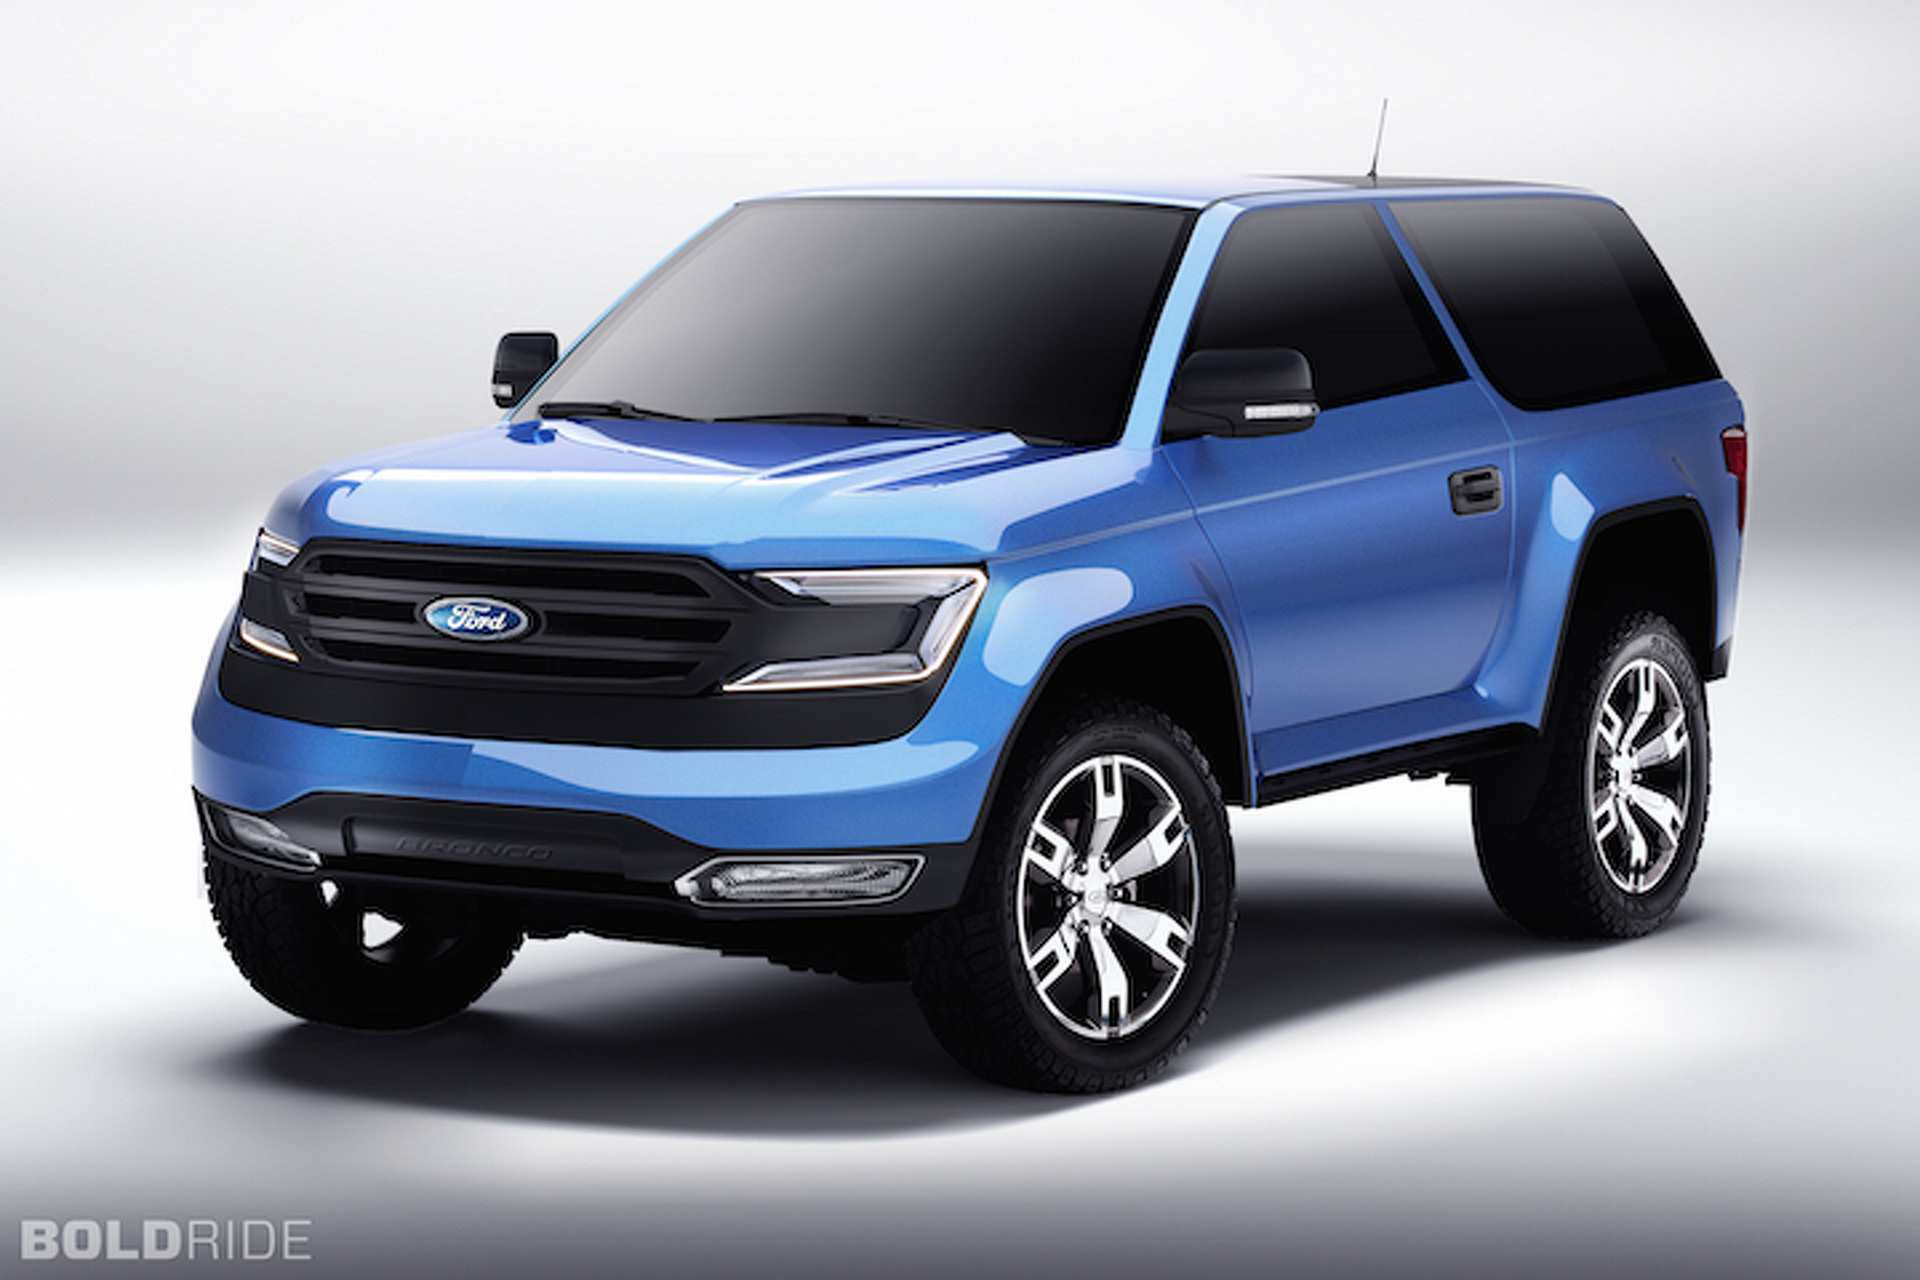 81 New 2019 Mini Bronco Images by 2019 Mini Bronco